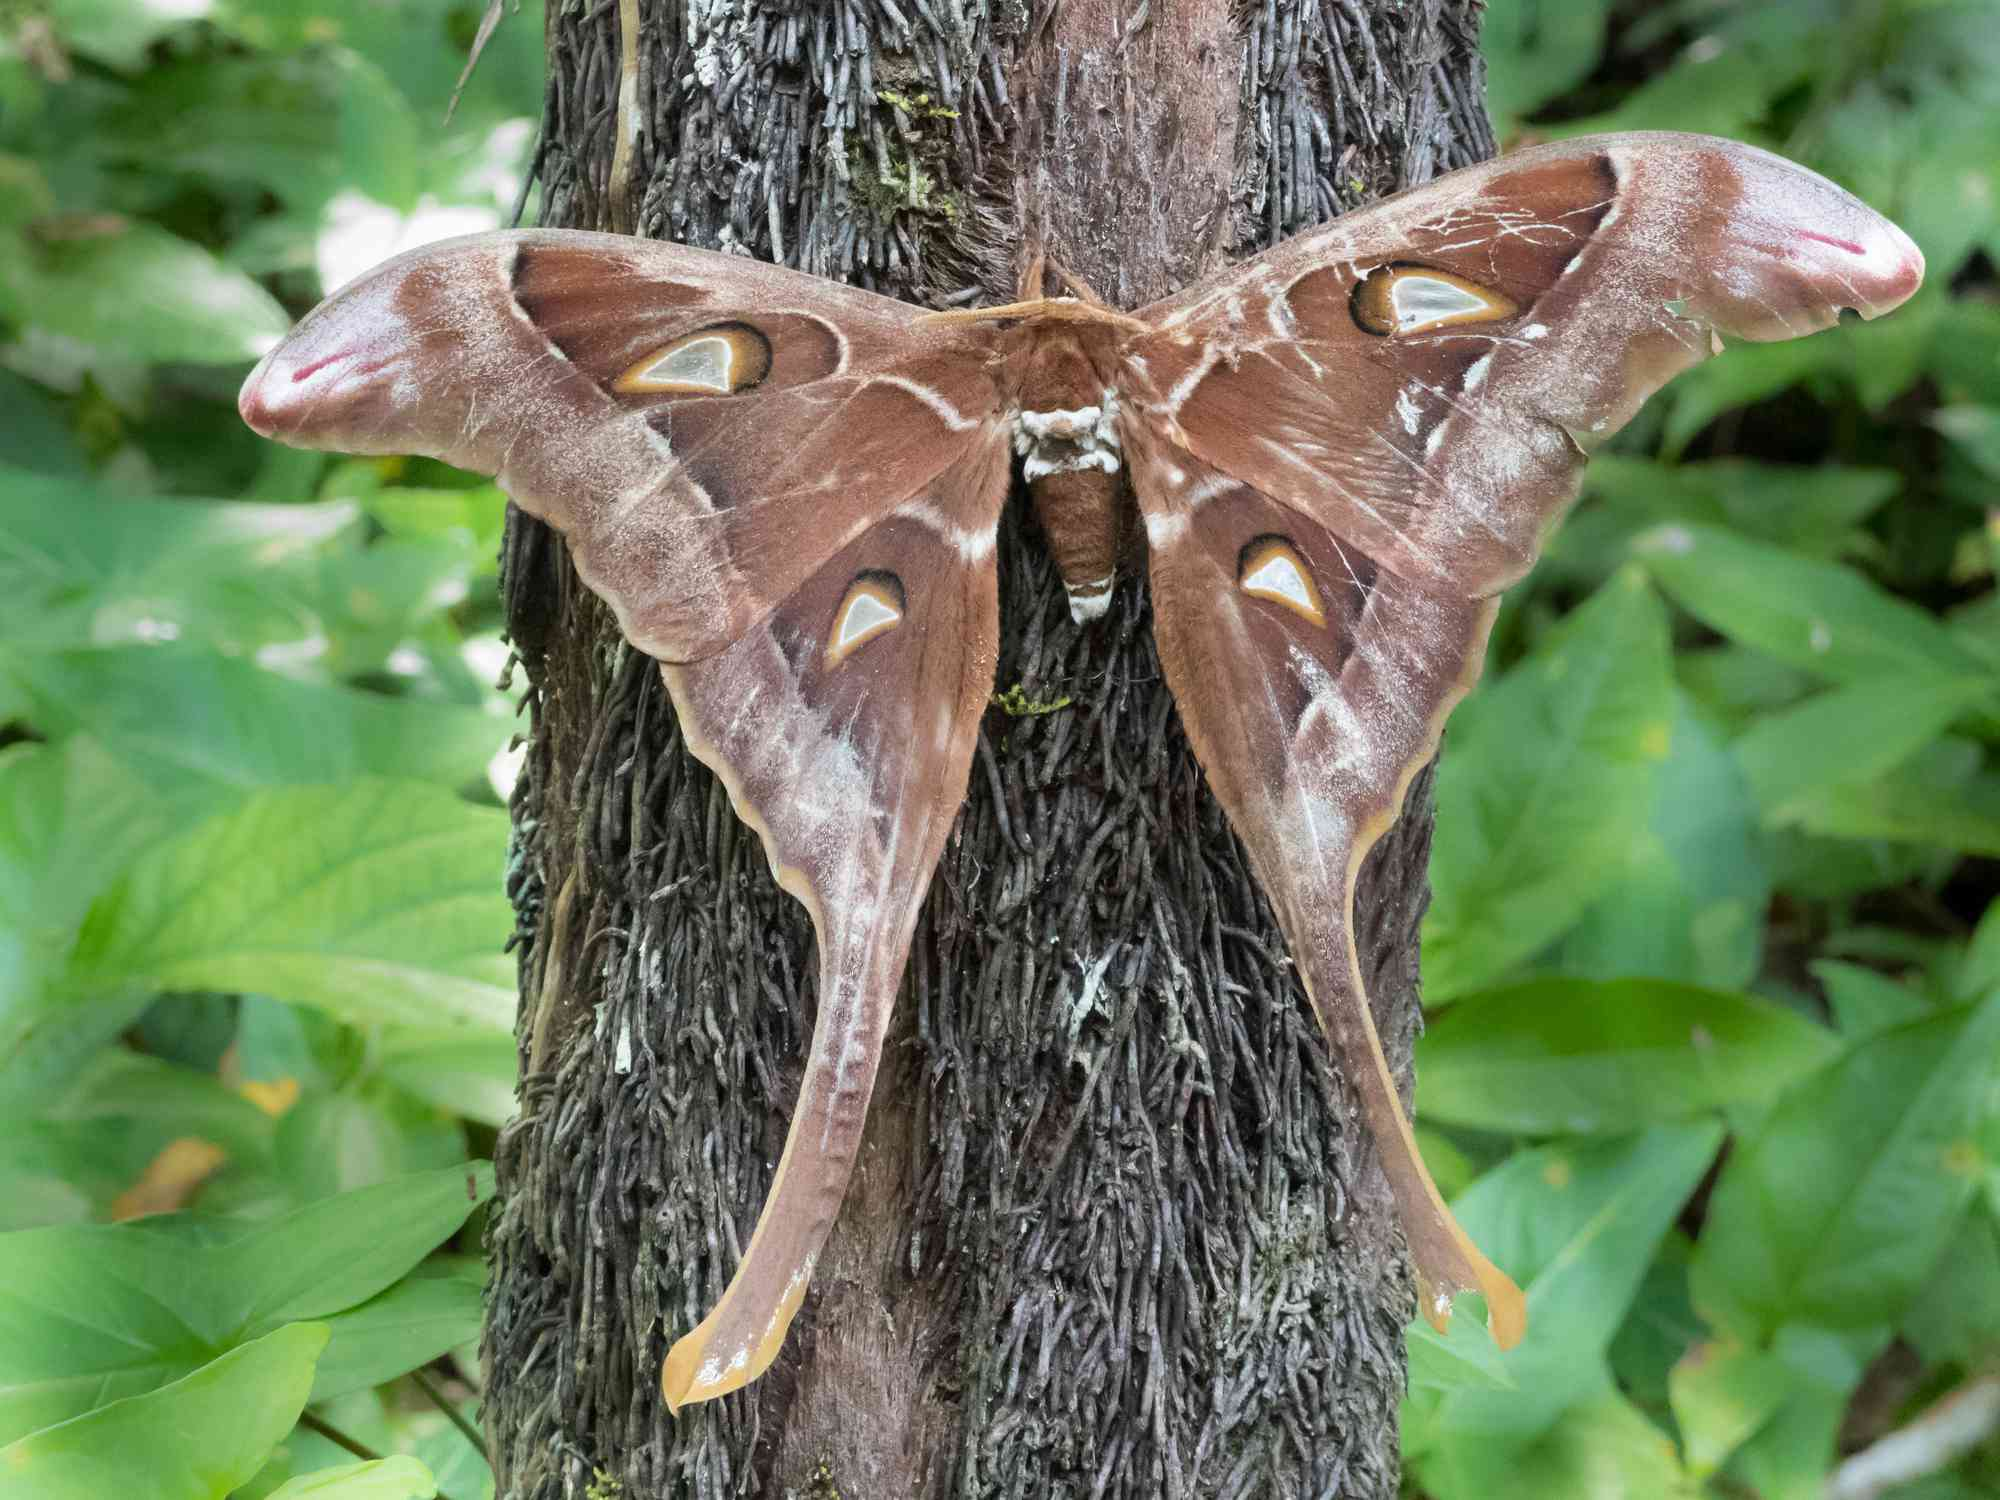 A large brown moth rests on a tree trunk